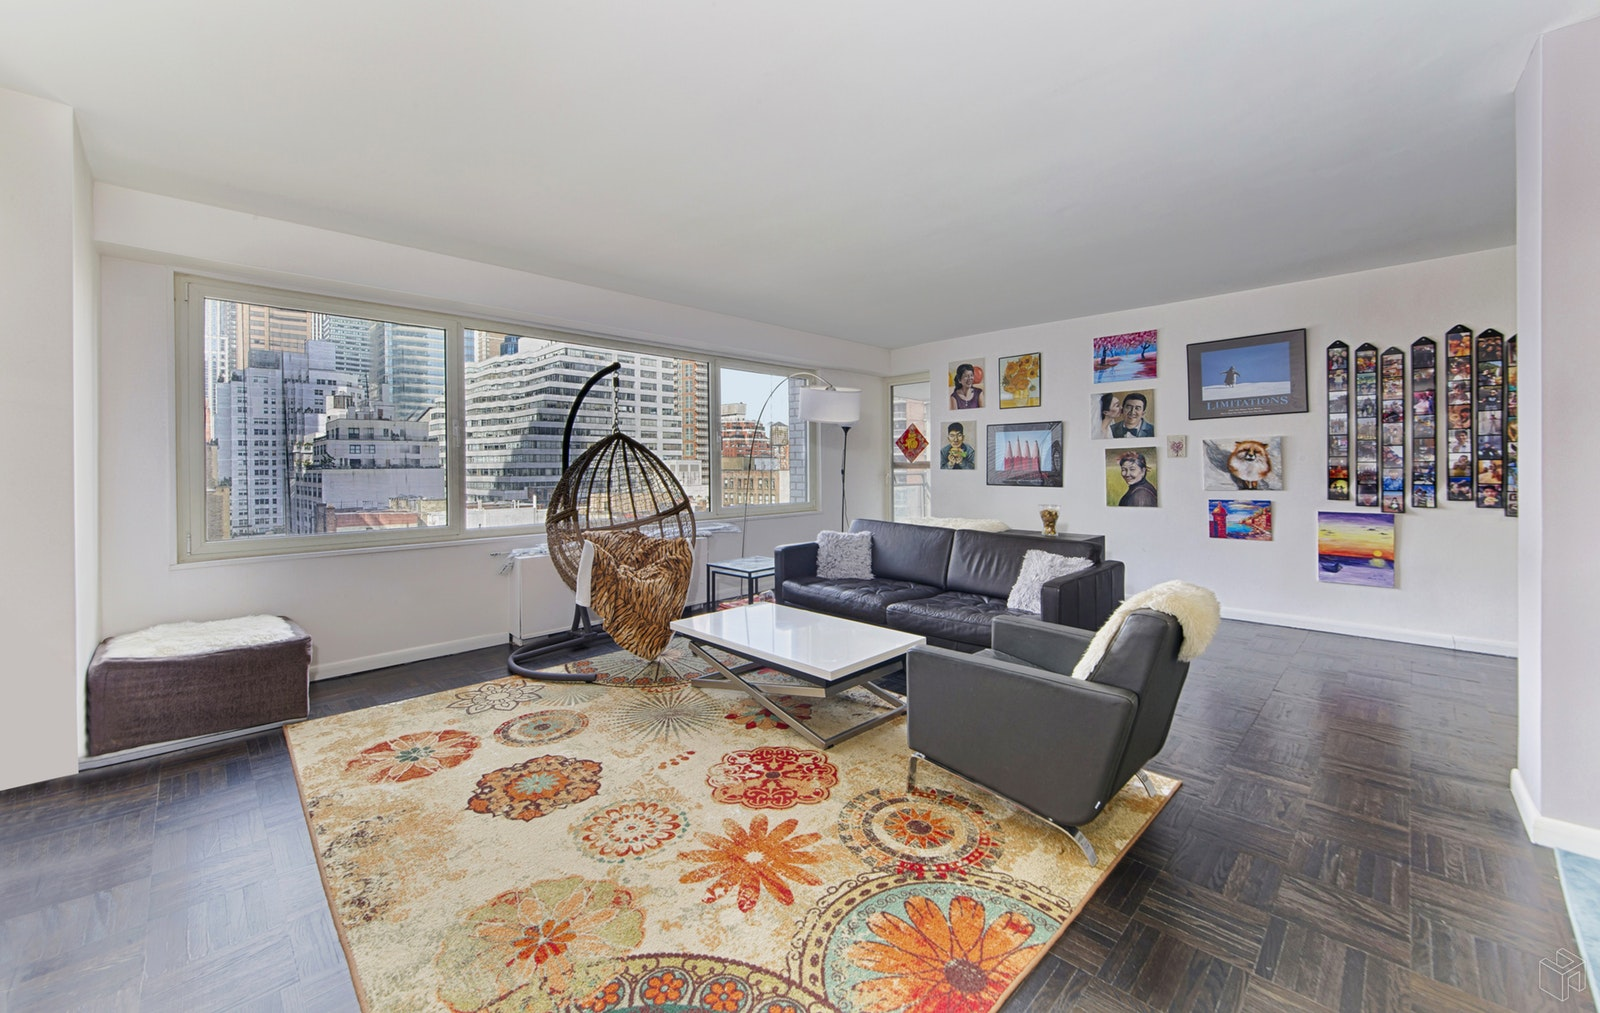 303 East 57th Street 8e, Midtown East, NYC, 10022, $495,000, Property For Sale, Halstead Real Estate, Photo 1